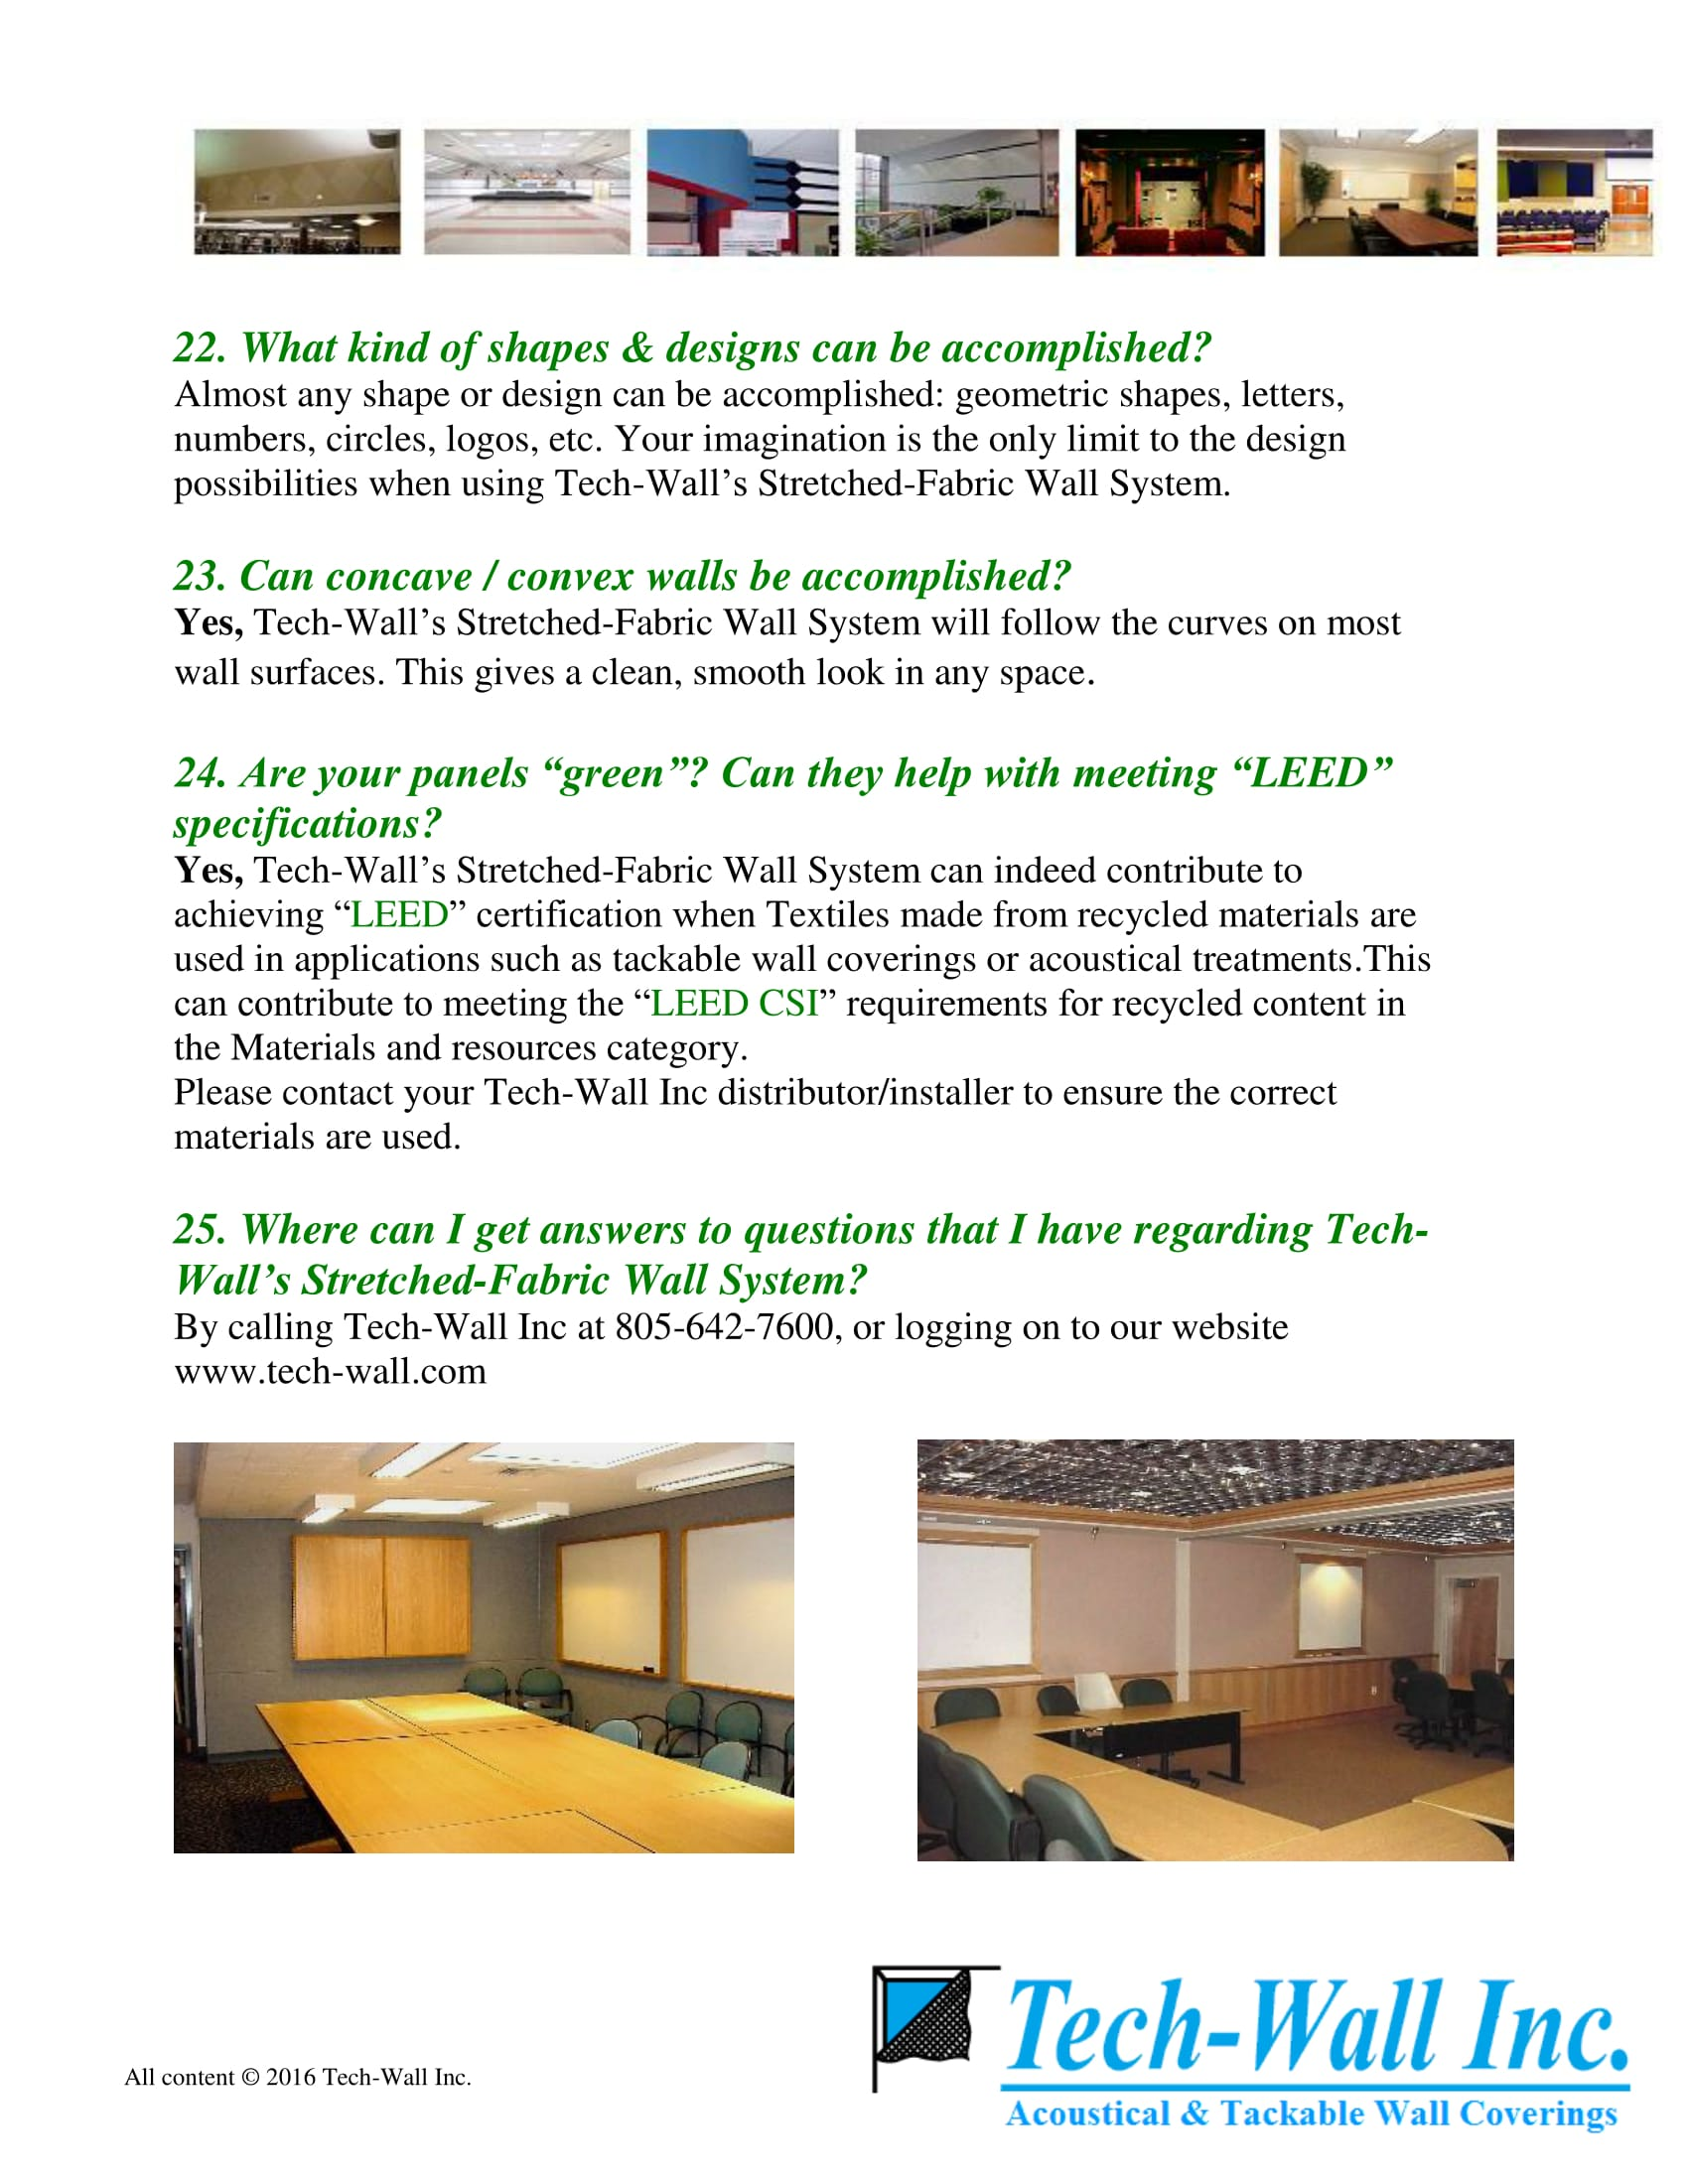 frequently-asked-questions-3-pages-5.jpg